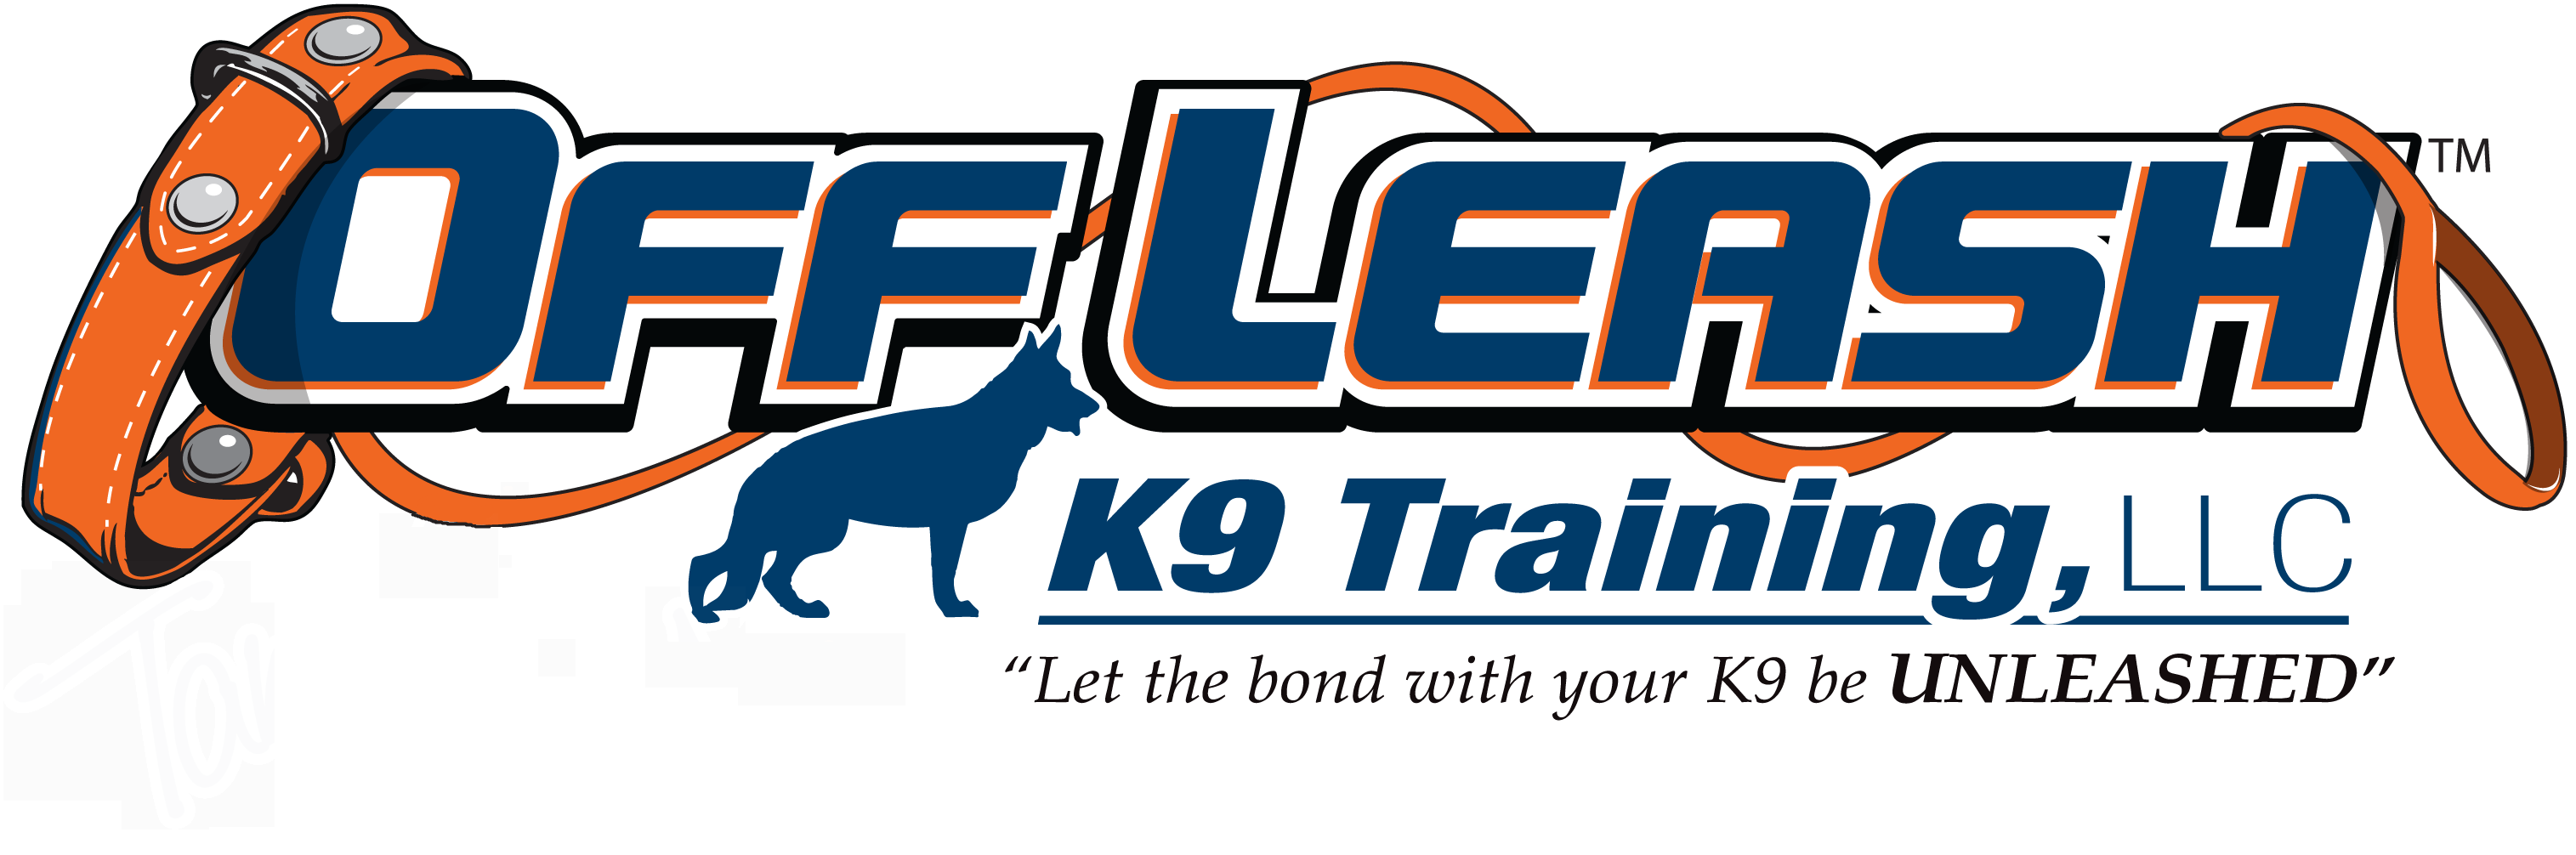 Josh Wilson's Off Leash K9 Training